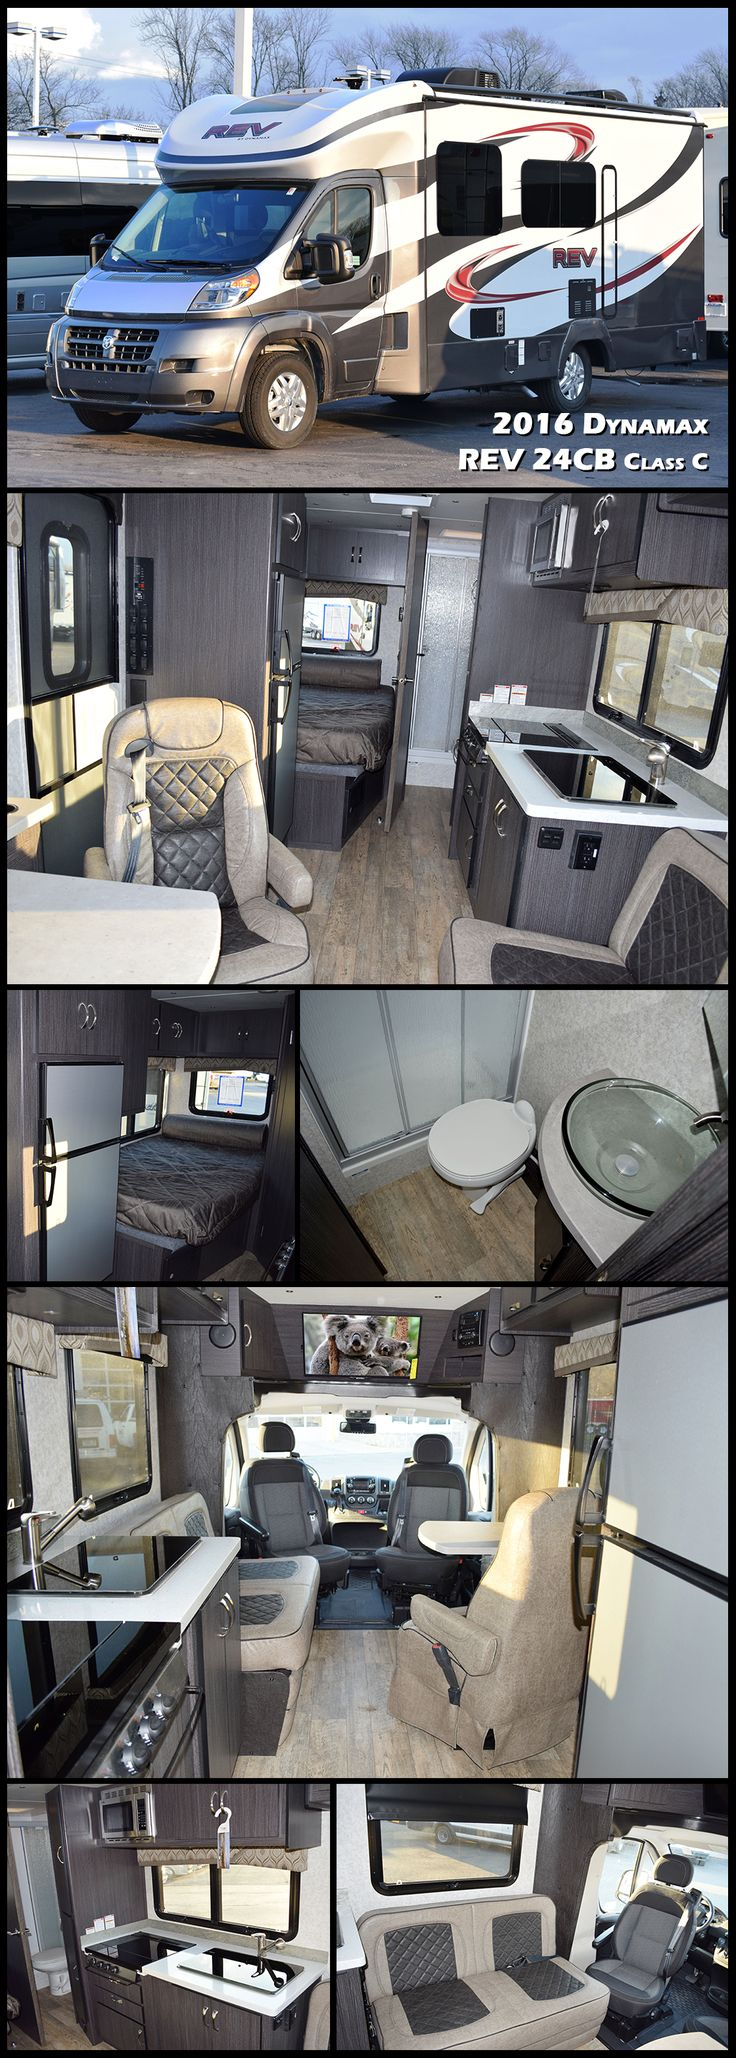 2016 Dynamax REV 24CB Class C. The fuel-efficient REV is engineered for the upwardly mobile and built to last with some of the most luxurious appointments in its class. By pairing a lightweight, contemporary living space with the comfort of Dodge's ProMaster® chassis, the REV is the perfect vehicle to get around and get away.